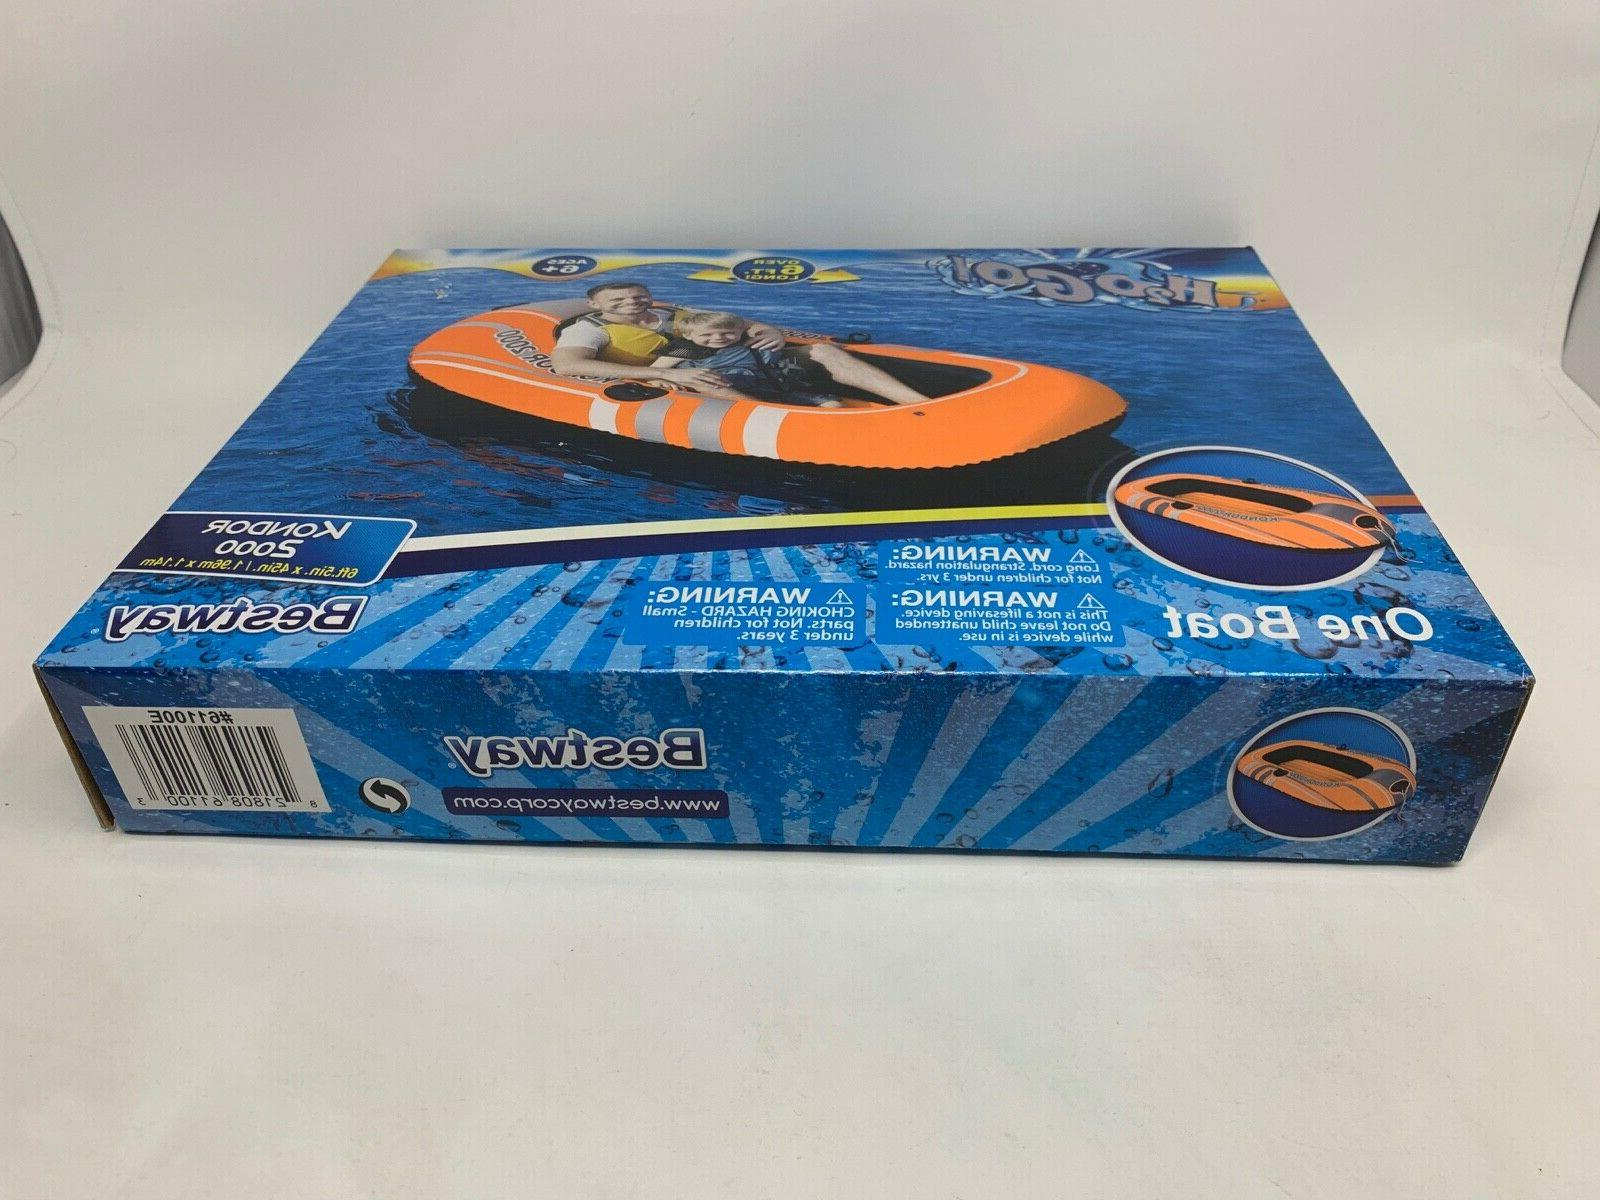 Bestway Person Boat Inflatable Raft